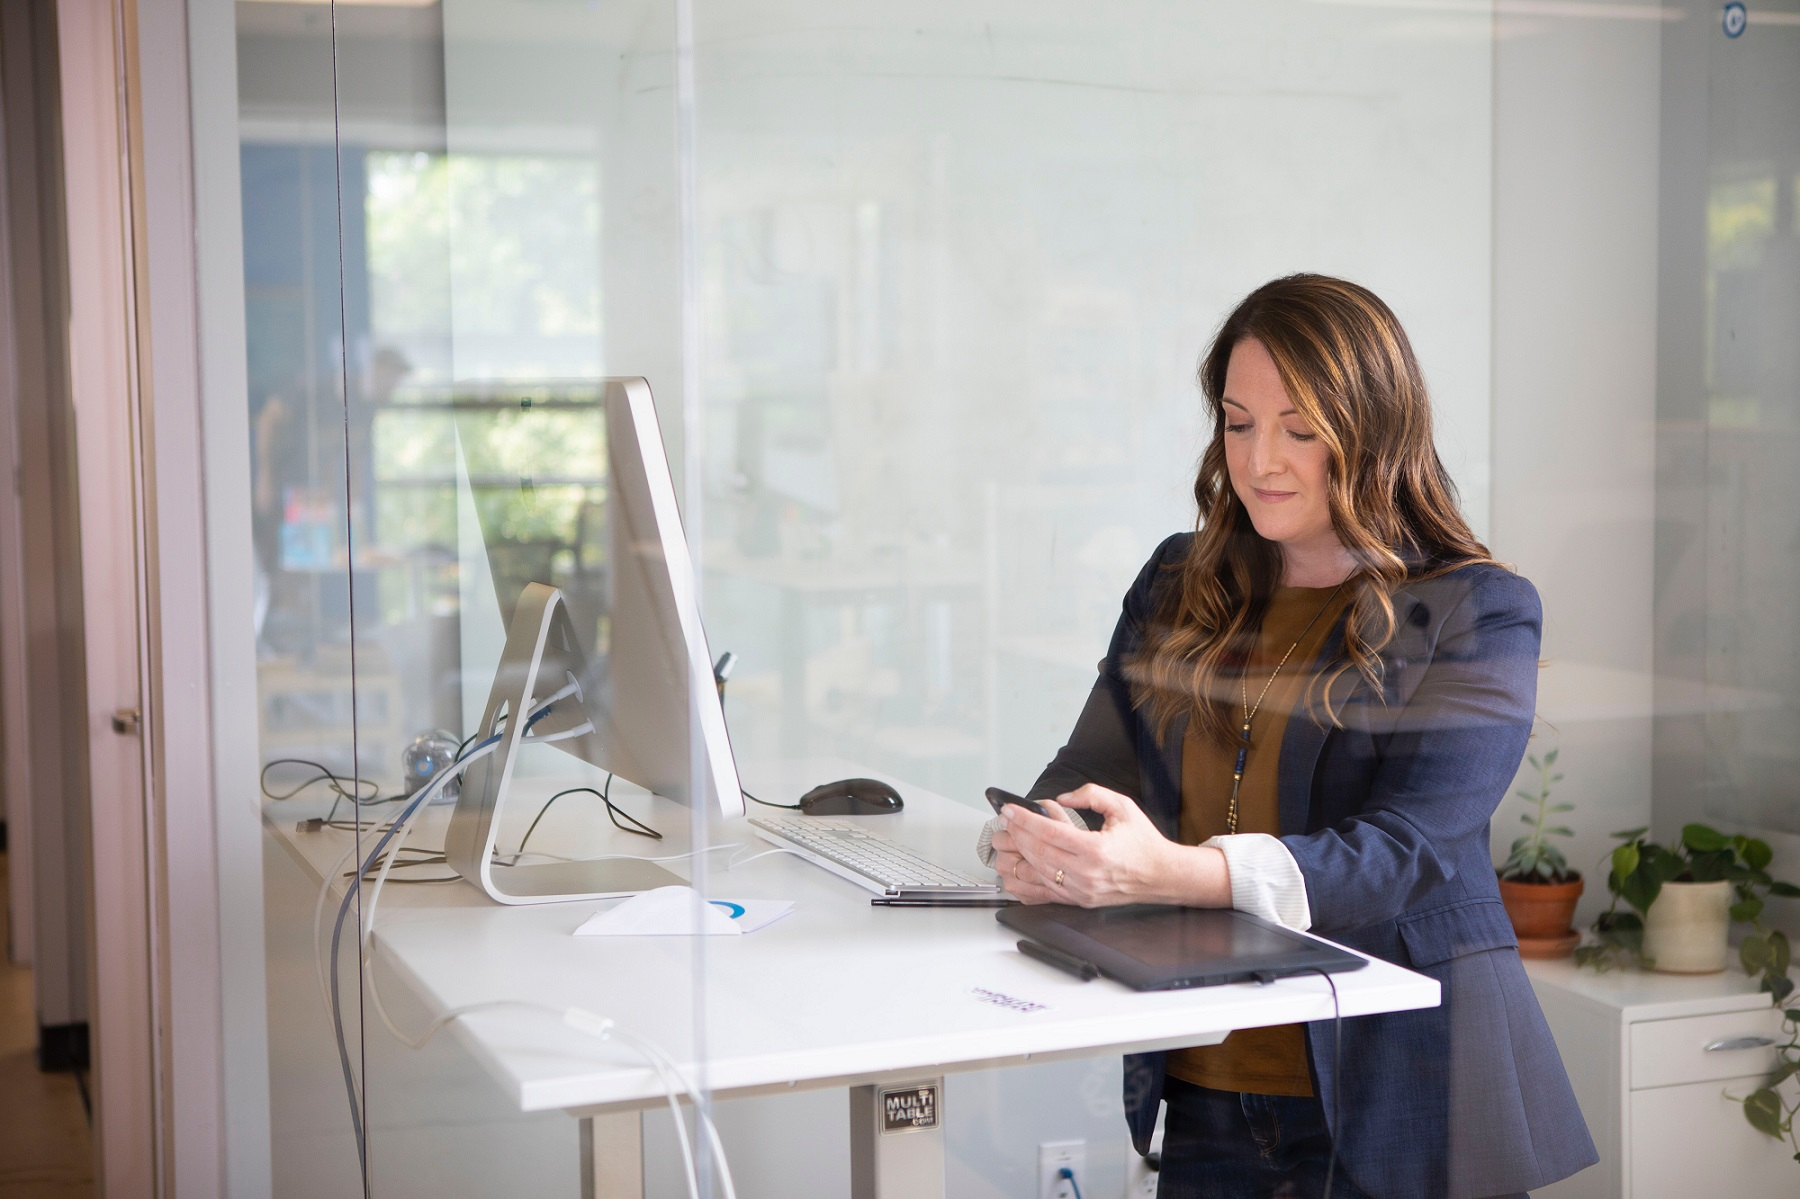 woman at computer desk on the phone looking at her mobile